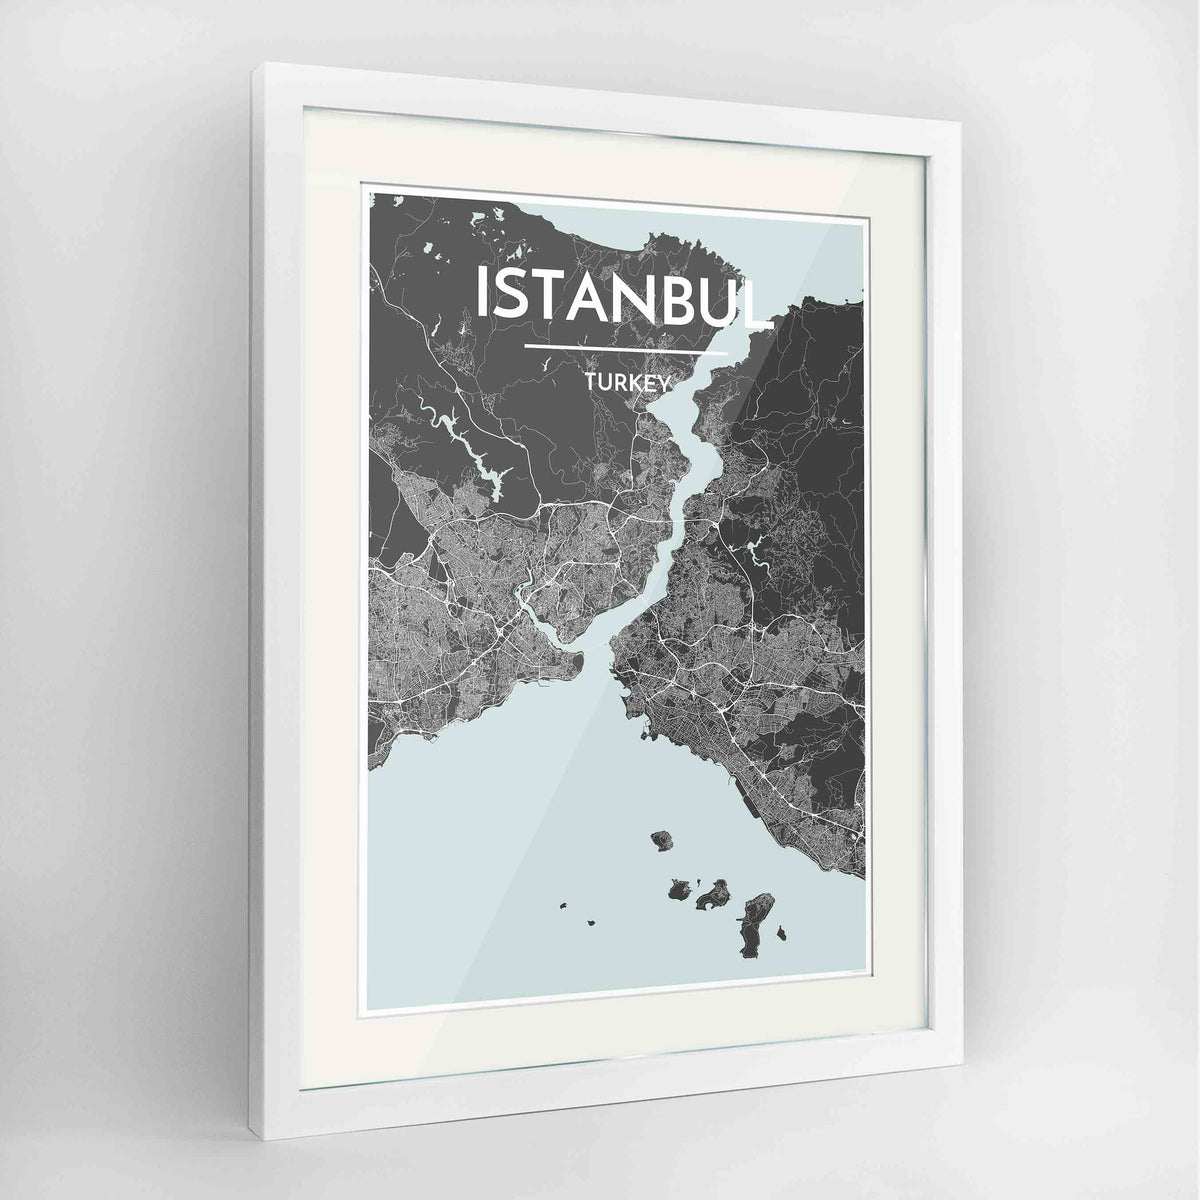 "Framed Istanbul Map Art Print 24x36"" Contemporary White frame Point Two Design Group"